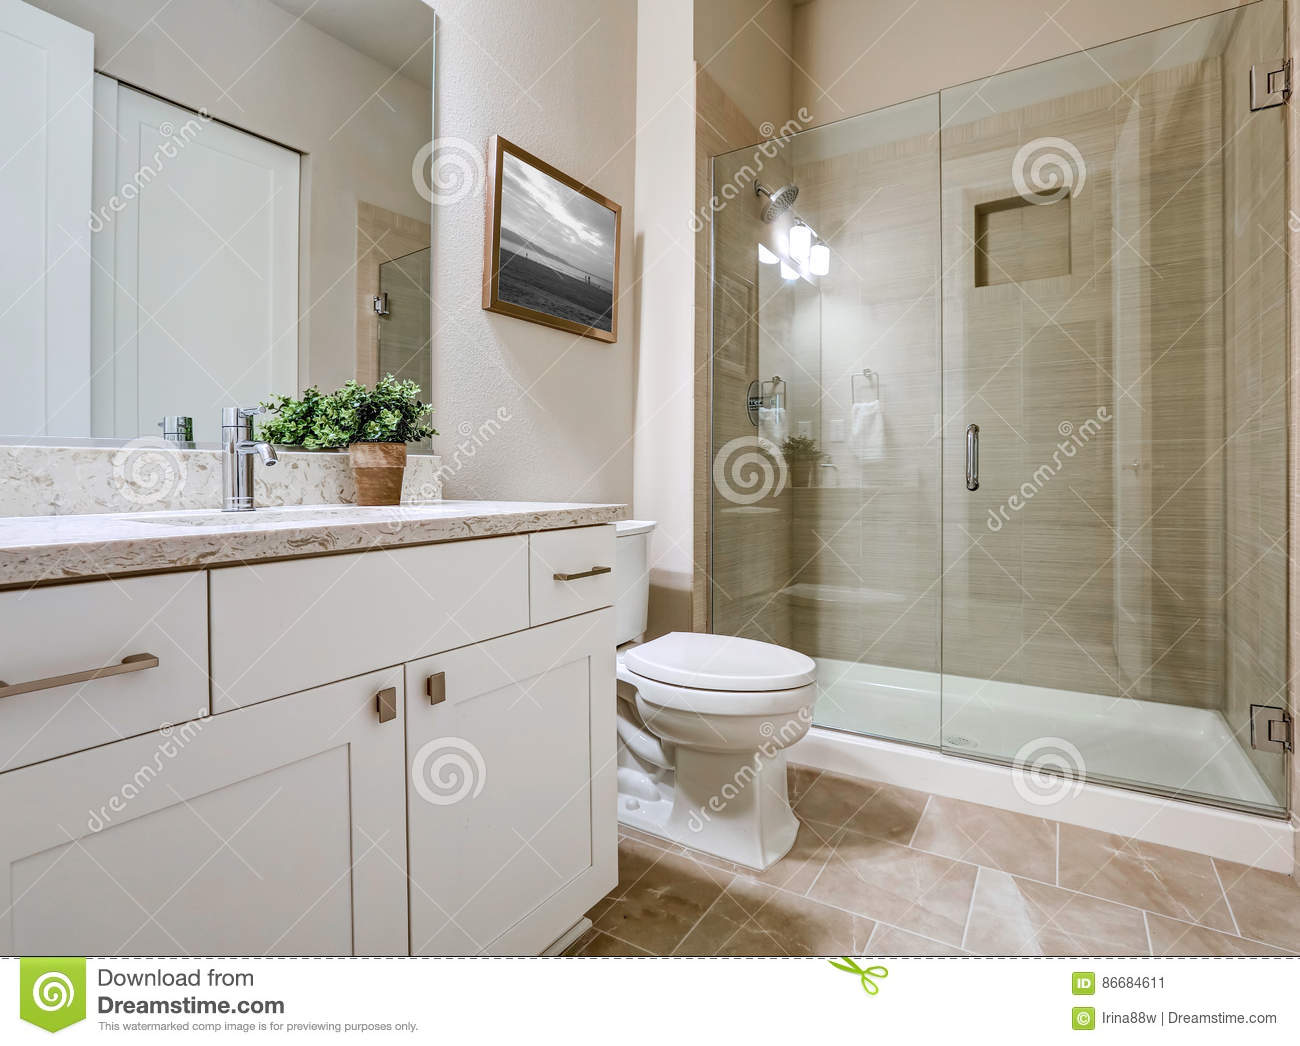 beige bathroom interior with white bath tub and glass shower royalty free stock photo. Black Bedroom Furniture Sets. Home Design Ideas